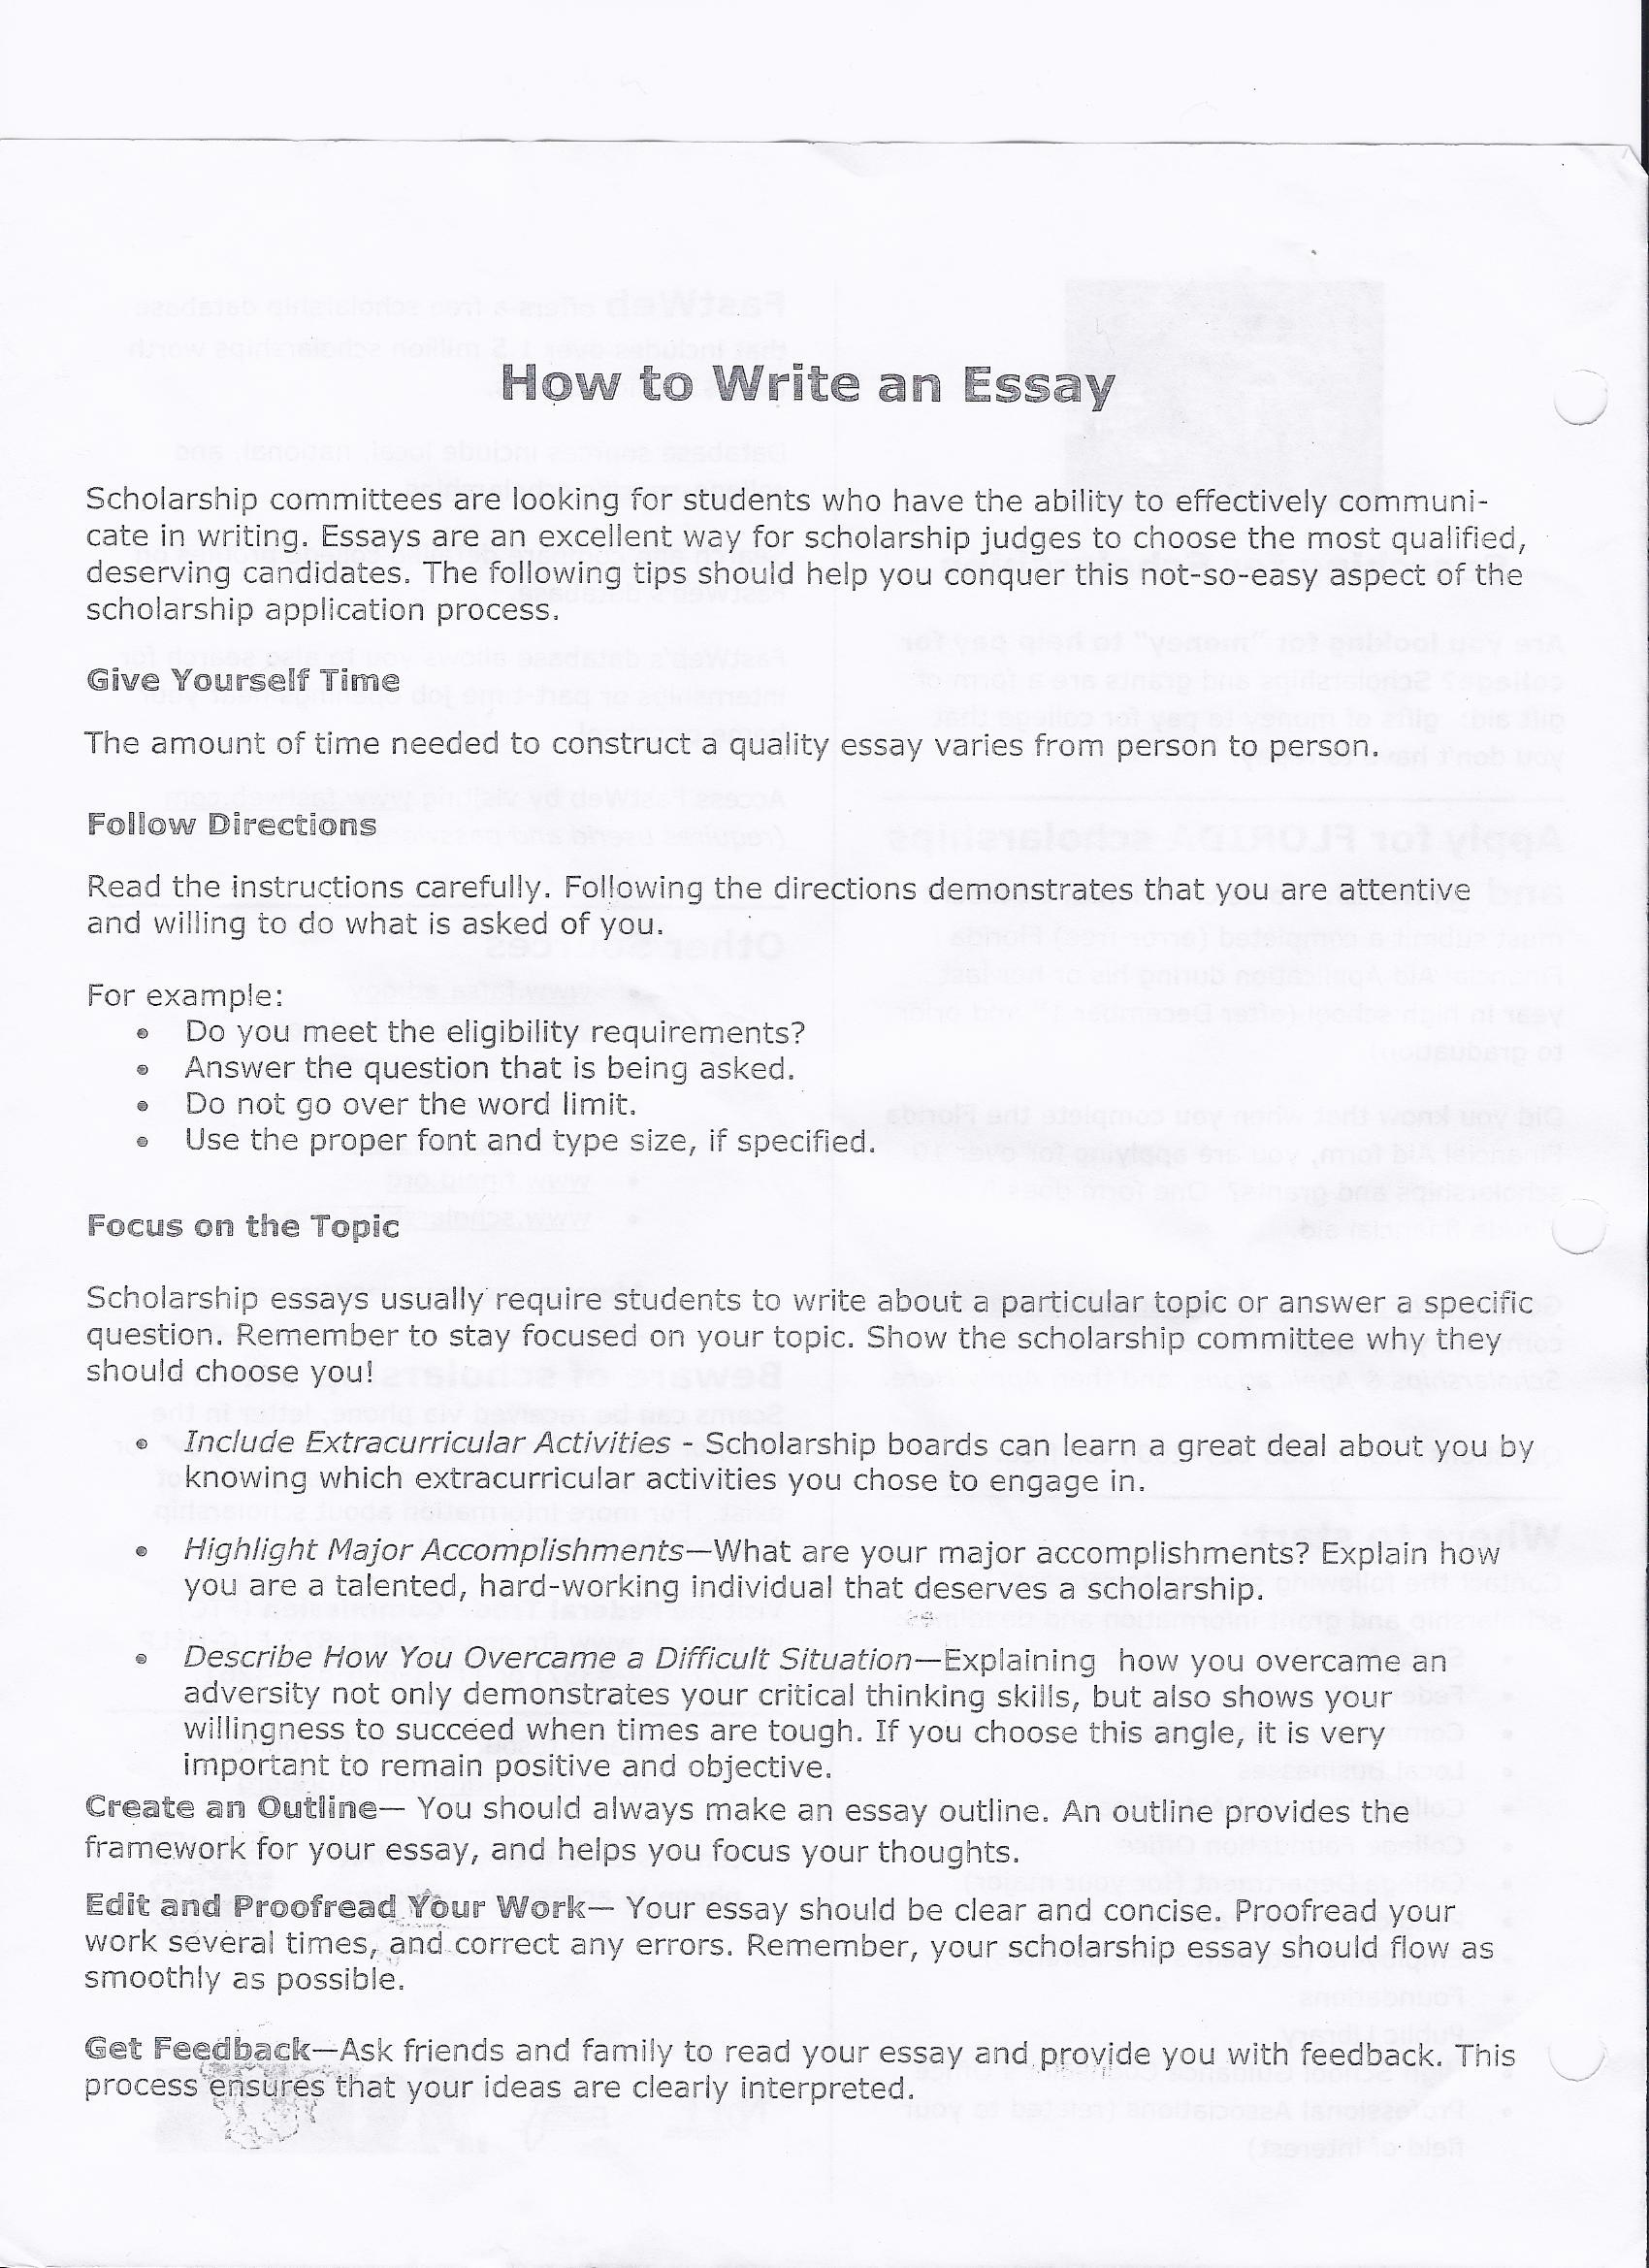 essay for dummies apa style for dummies writing the essay essay  how to write an essay for dummies dummies guide to essay writing examples and samples